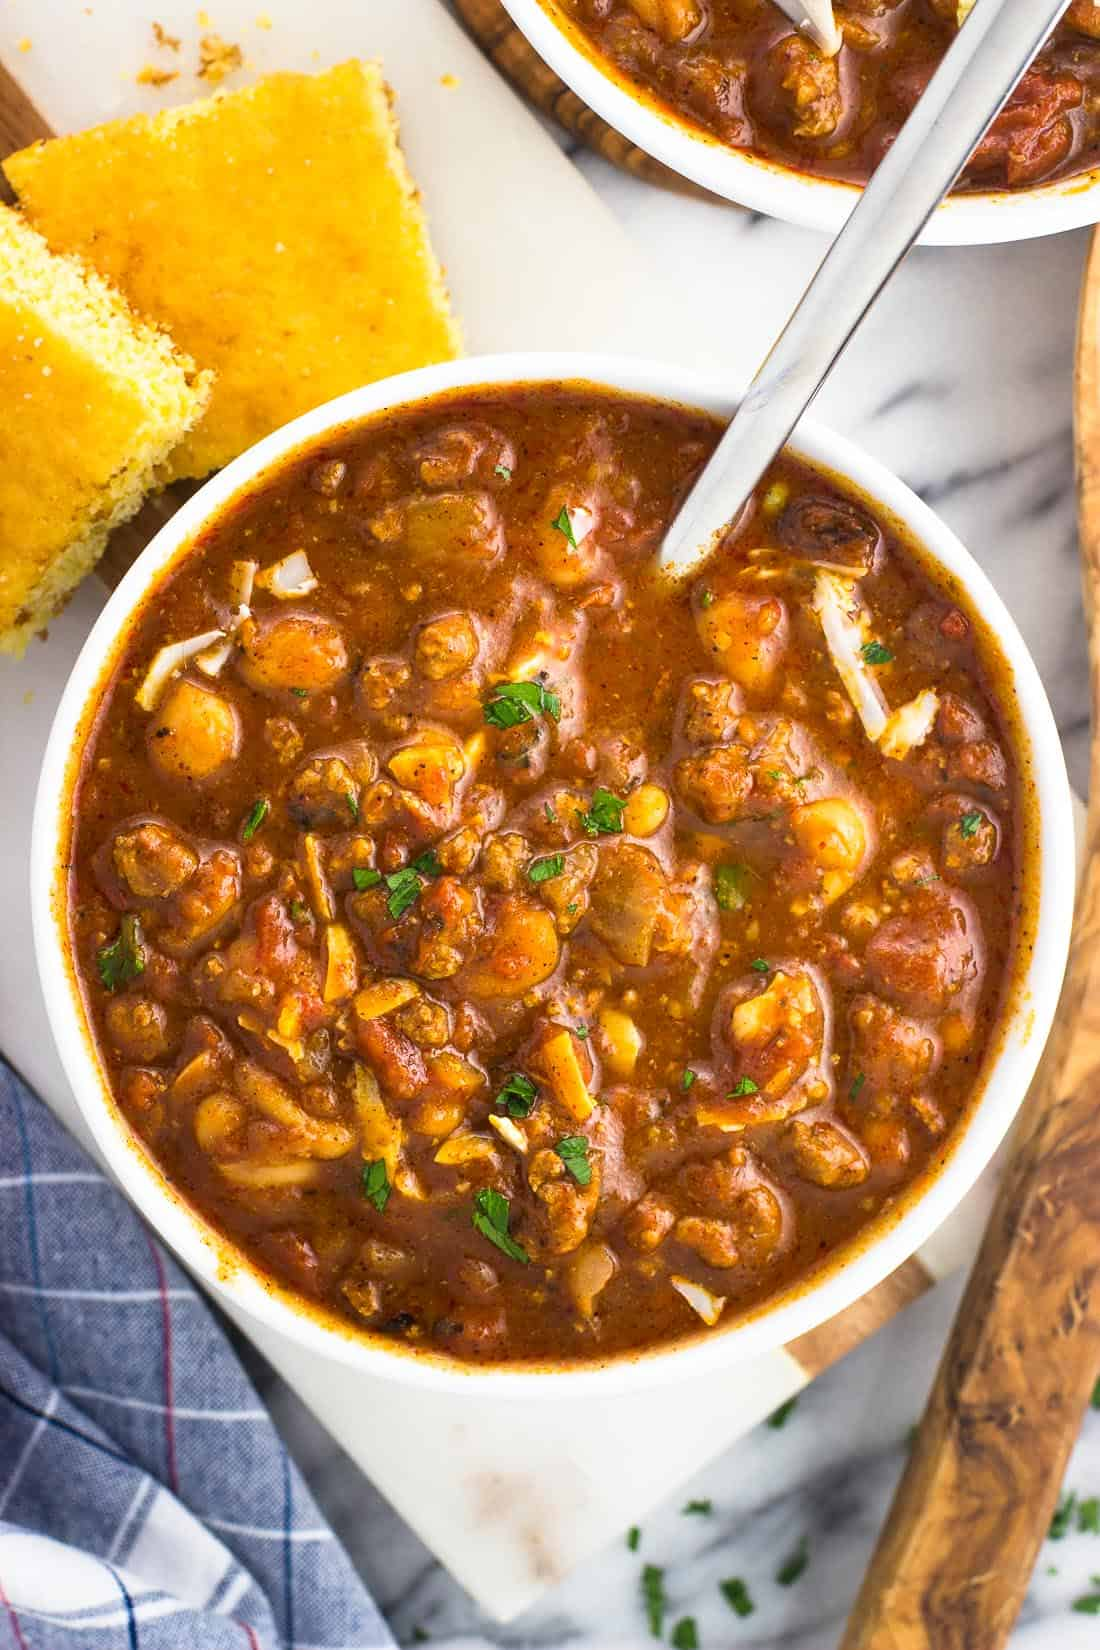 A bowl of turkey chili next to pieces of cornbread